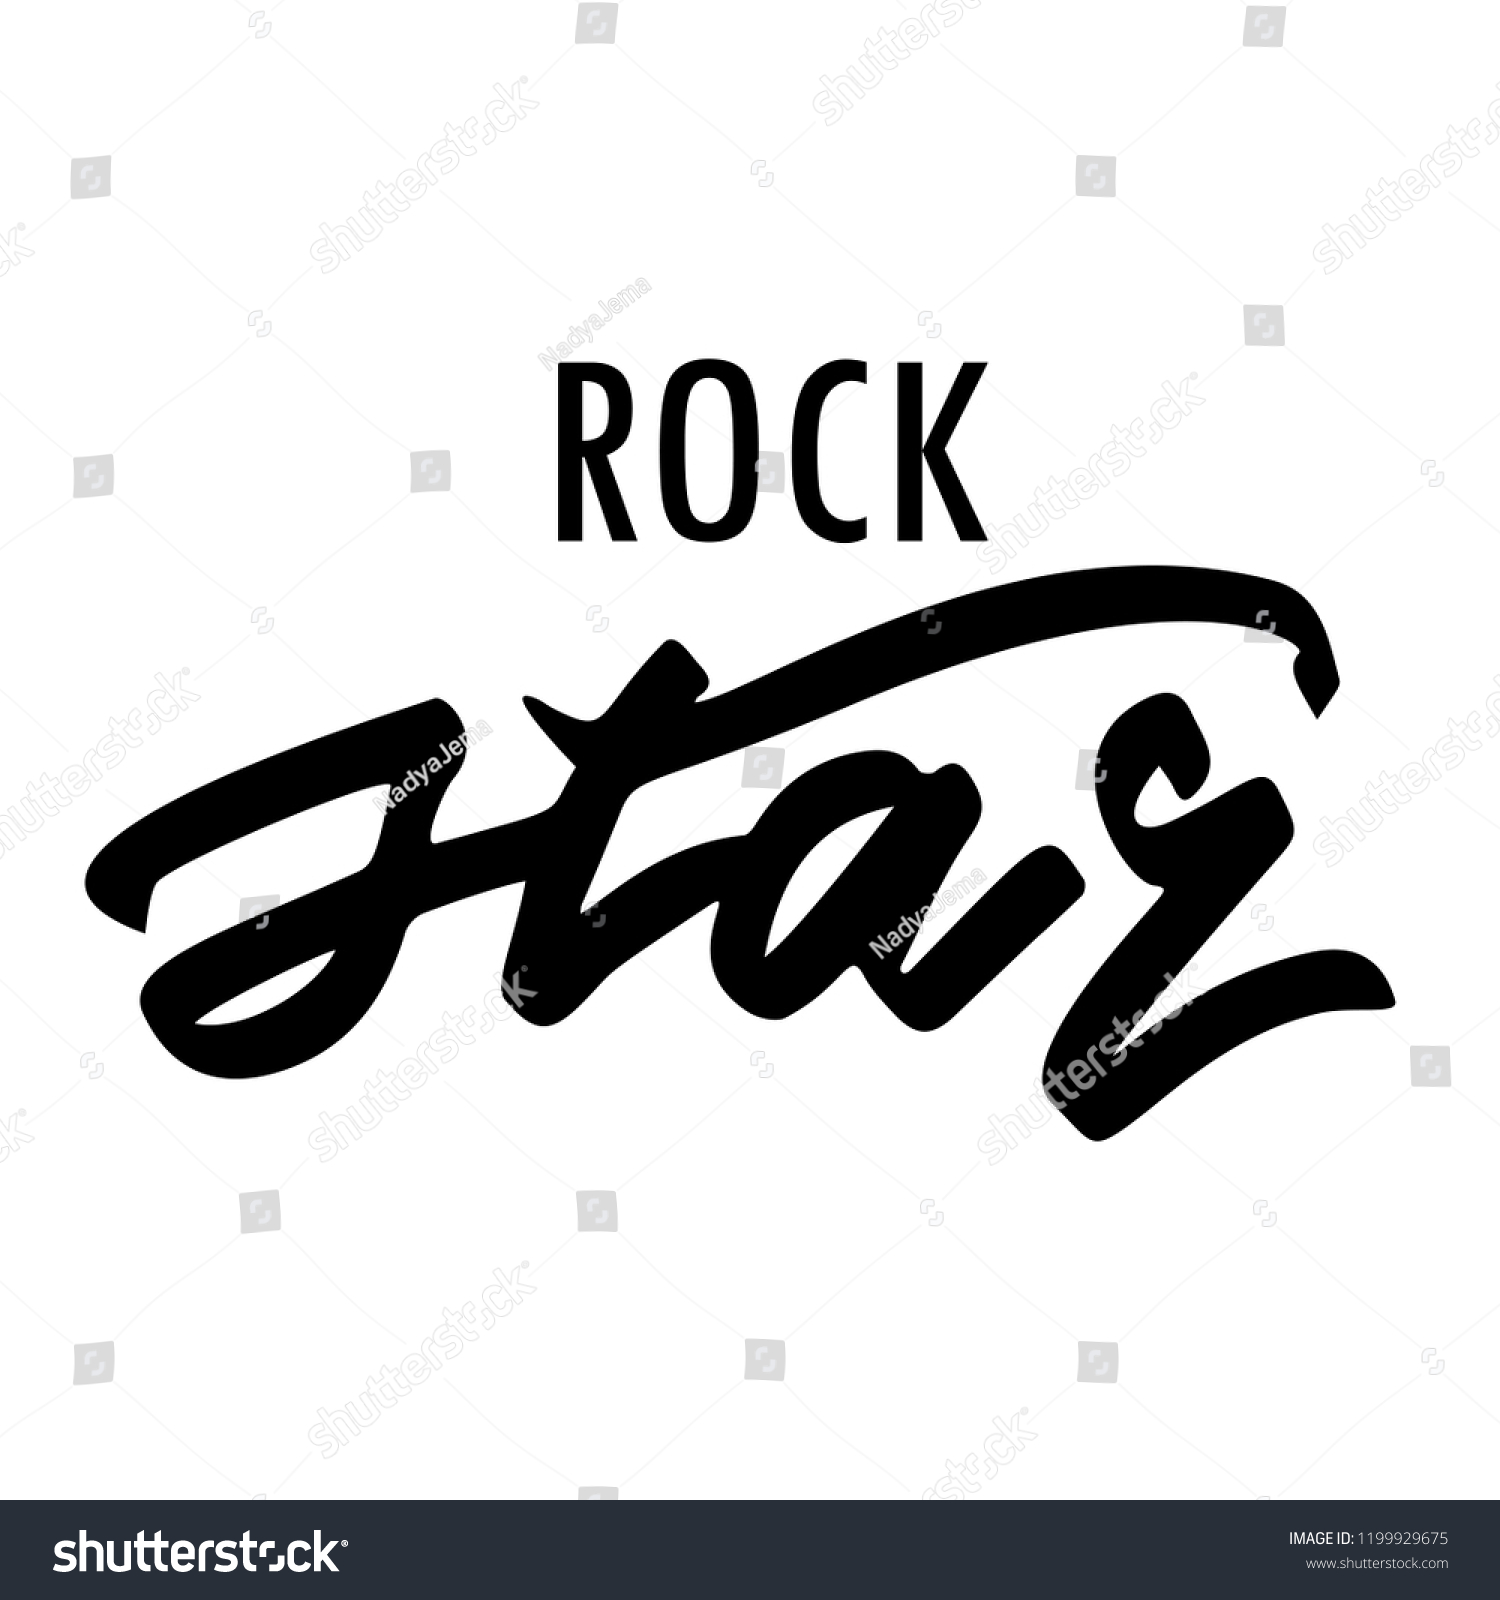 Phrase rockstar background with quote in black isolated on white background